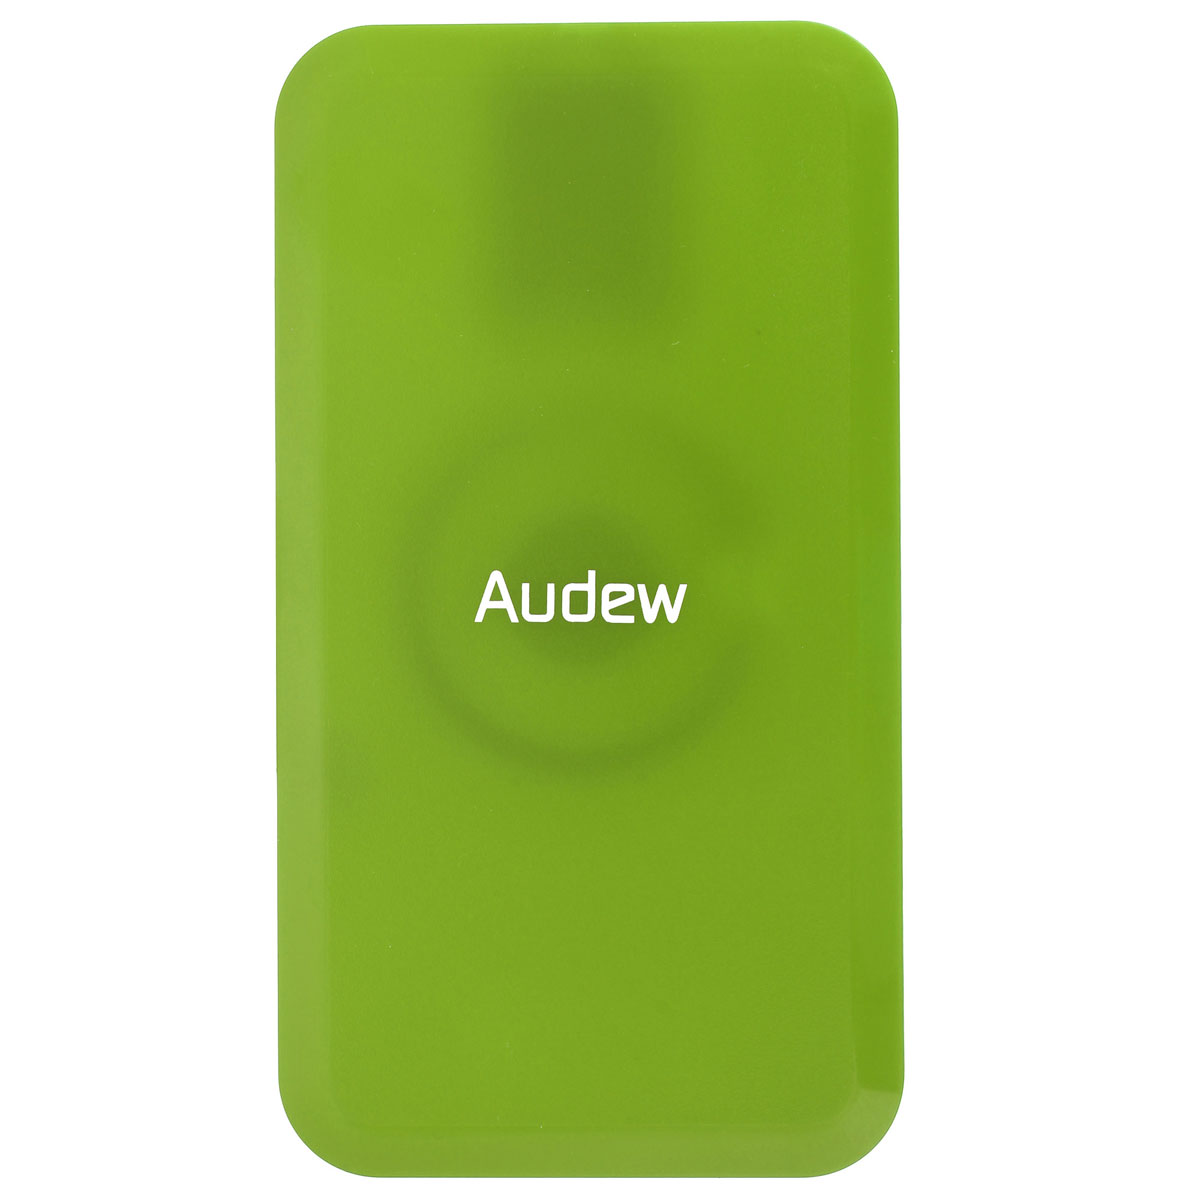 Cell phones amp accessories gt cell phone accessories gt chargers - Audew Qi Wireless Usb Charger Charging Pad For